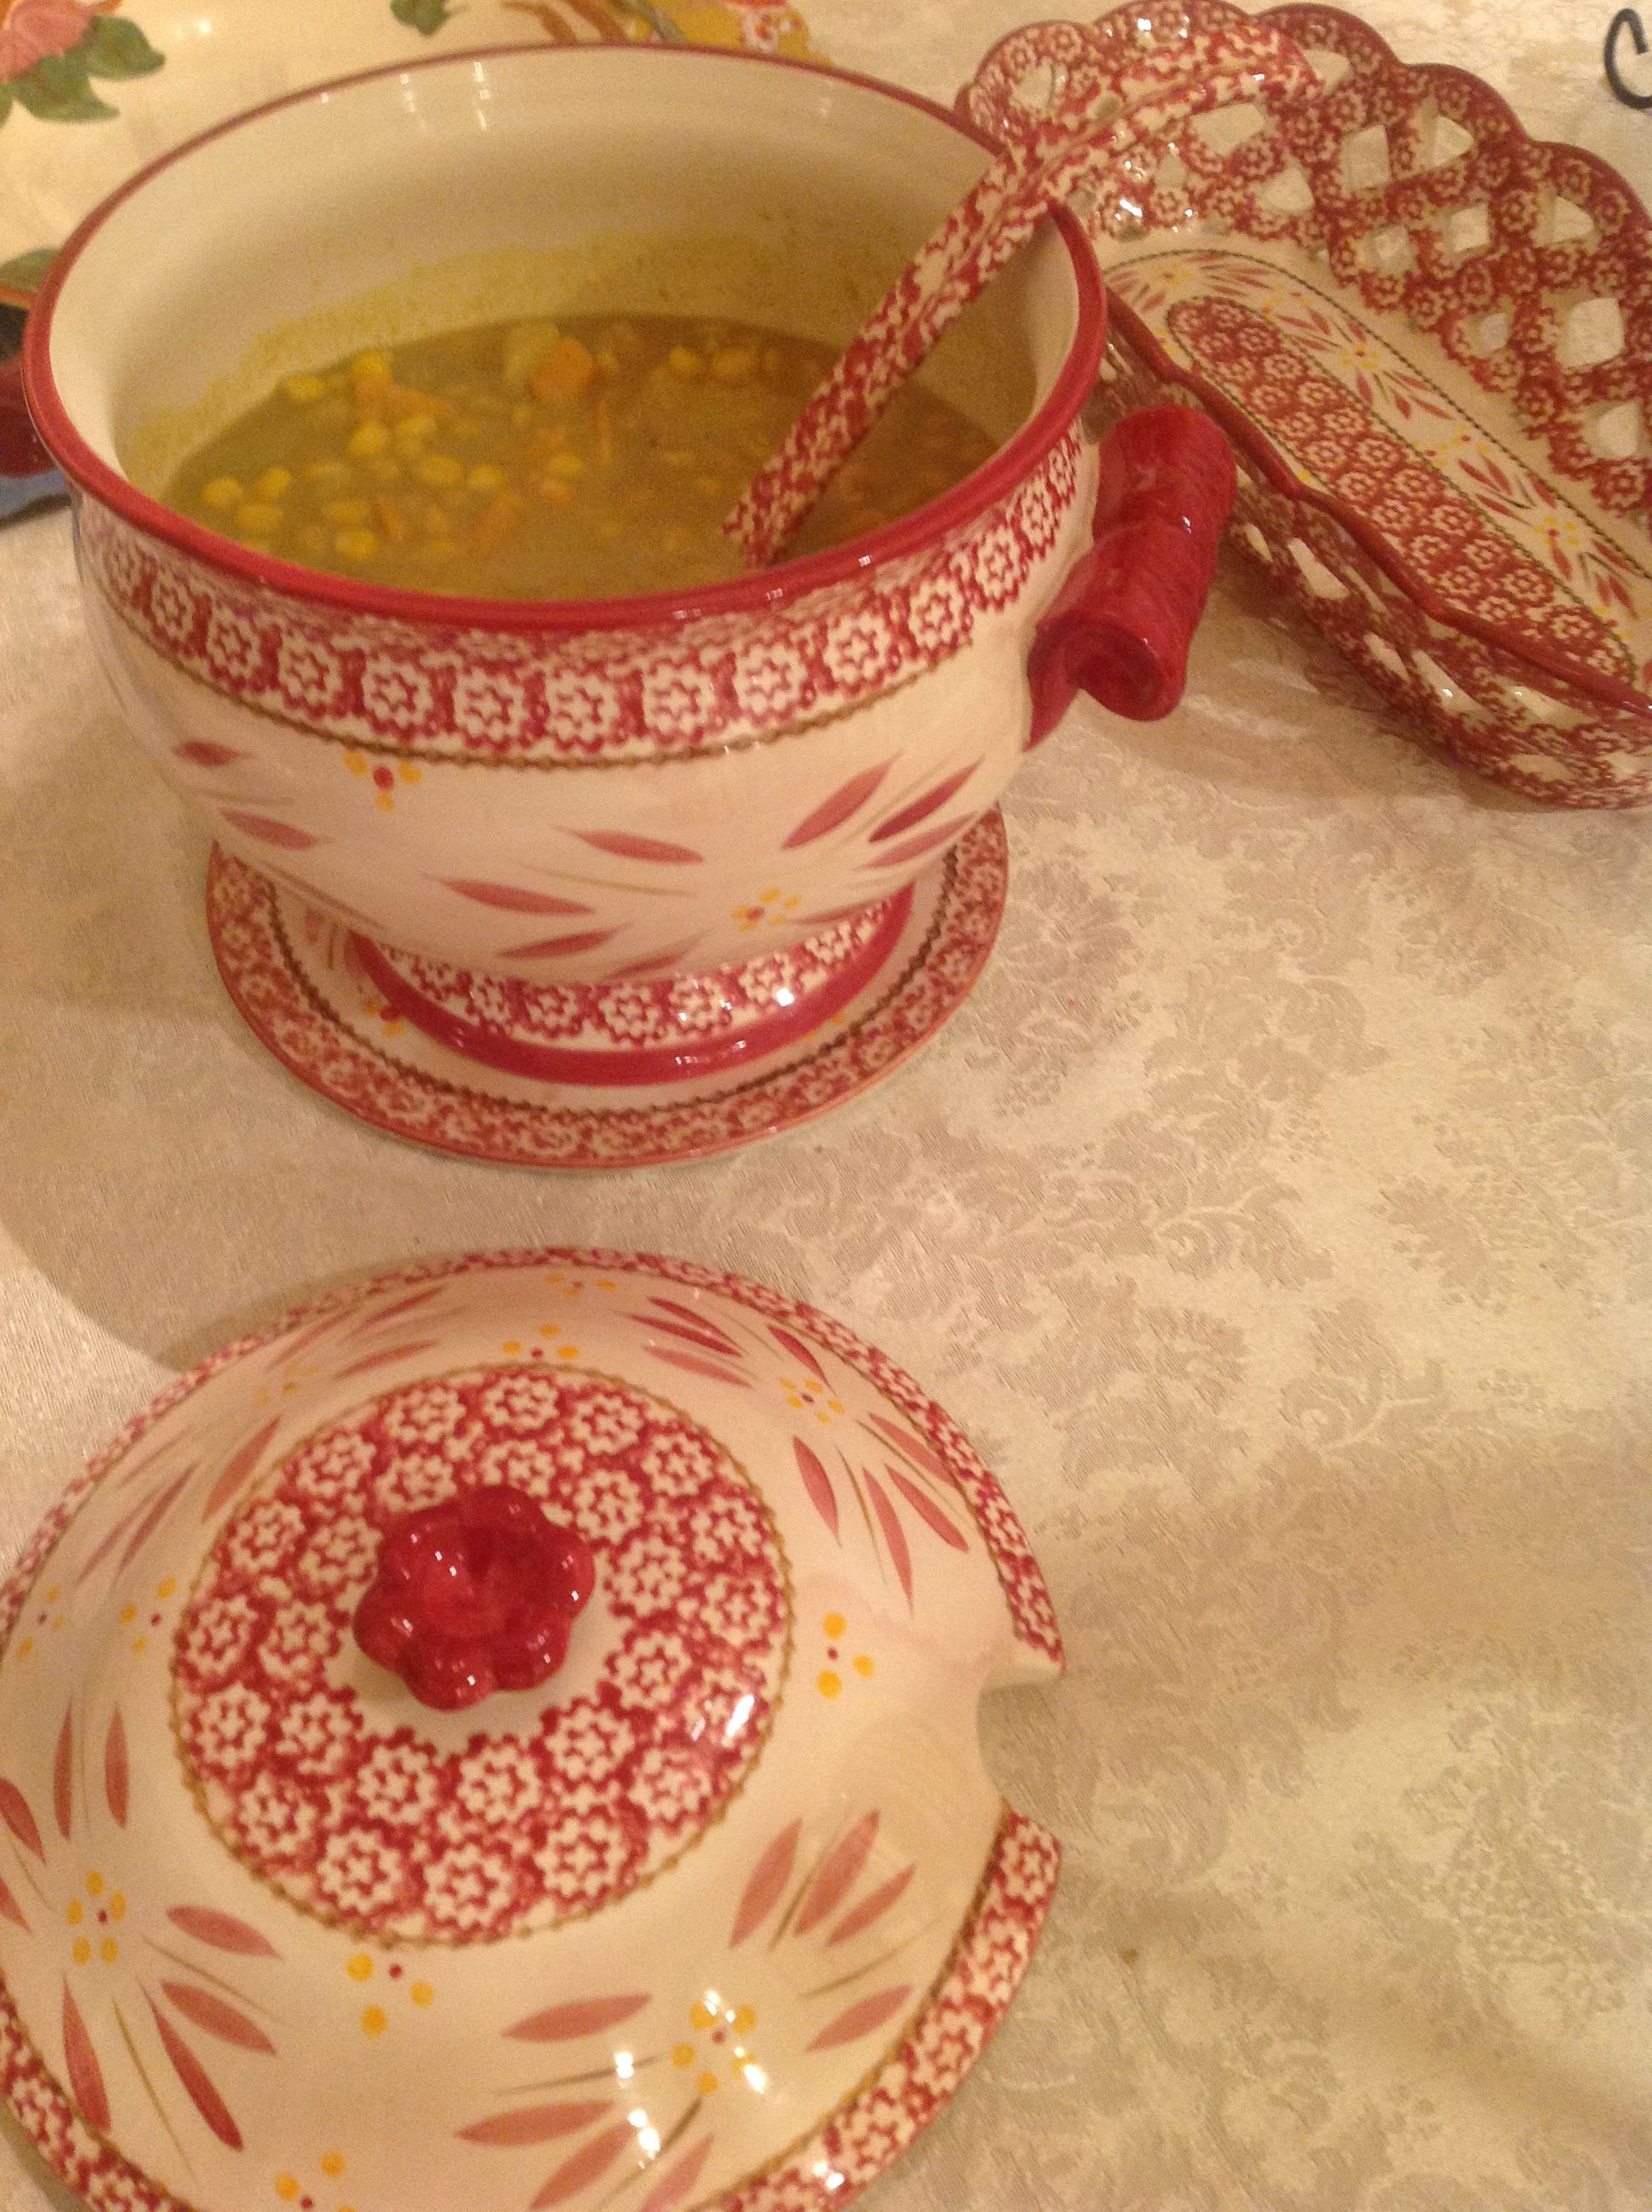 Soup tureen with curry shrimp soup